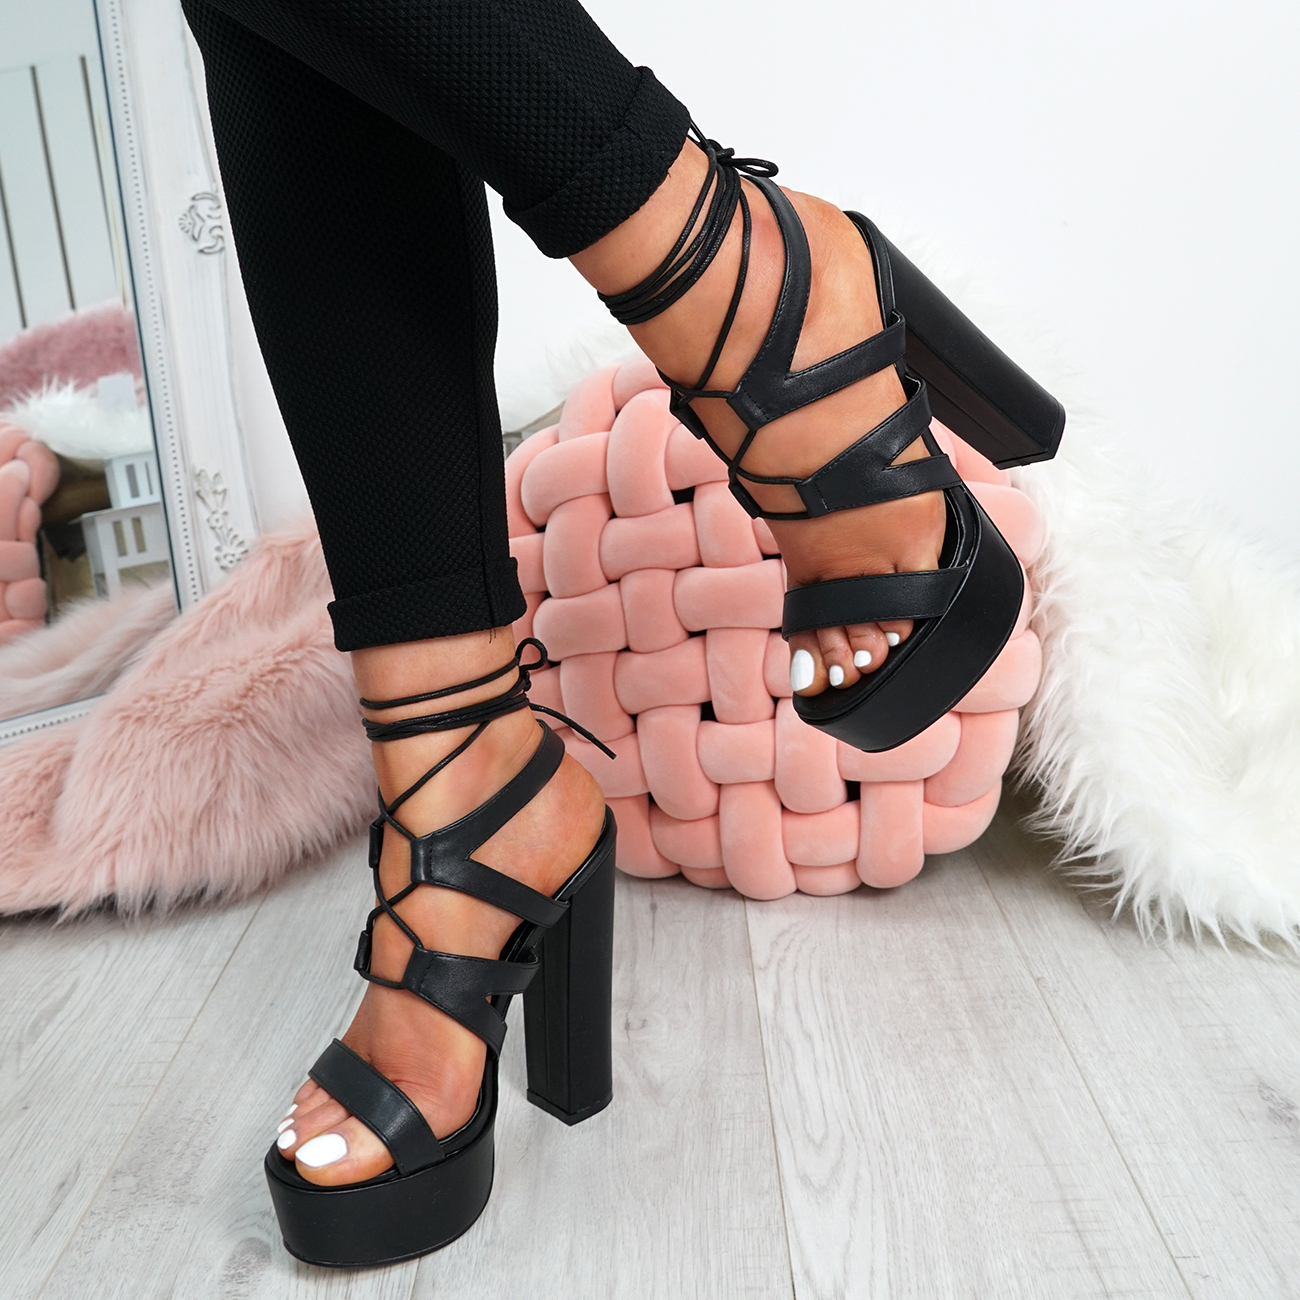 Ladies-Cross-Lace-High-Block-Heel-Sandals-Womens-Platforms-Peep-Toe-Shoes-Size thumbnail 6